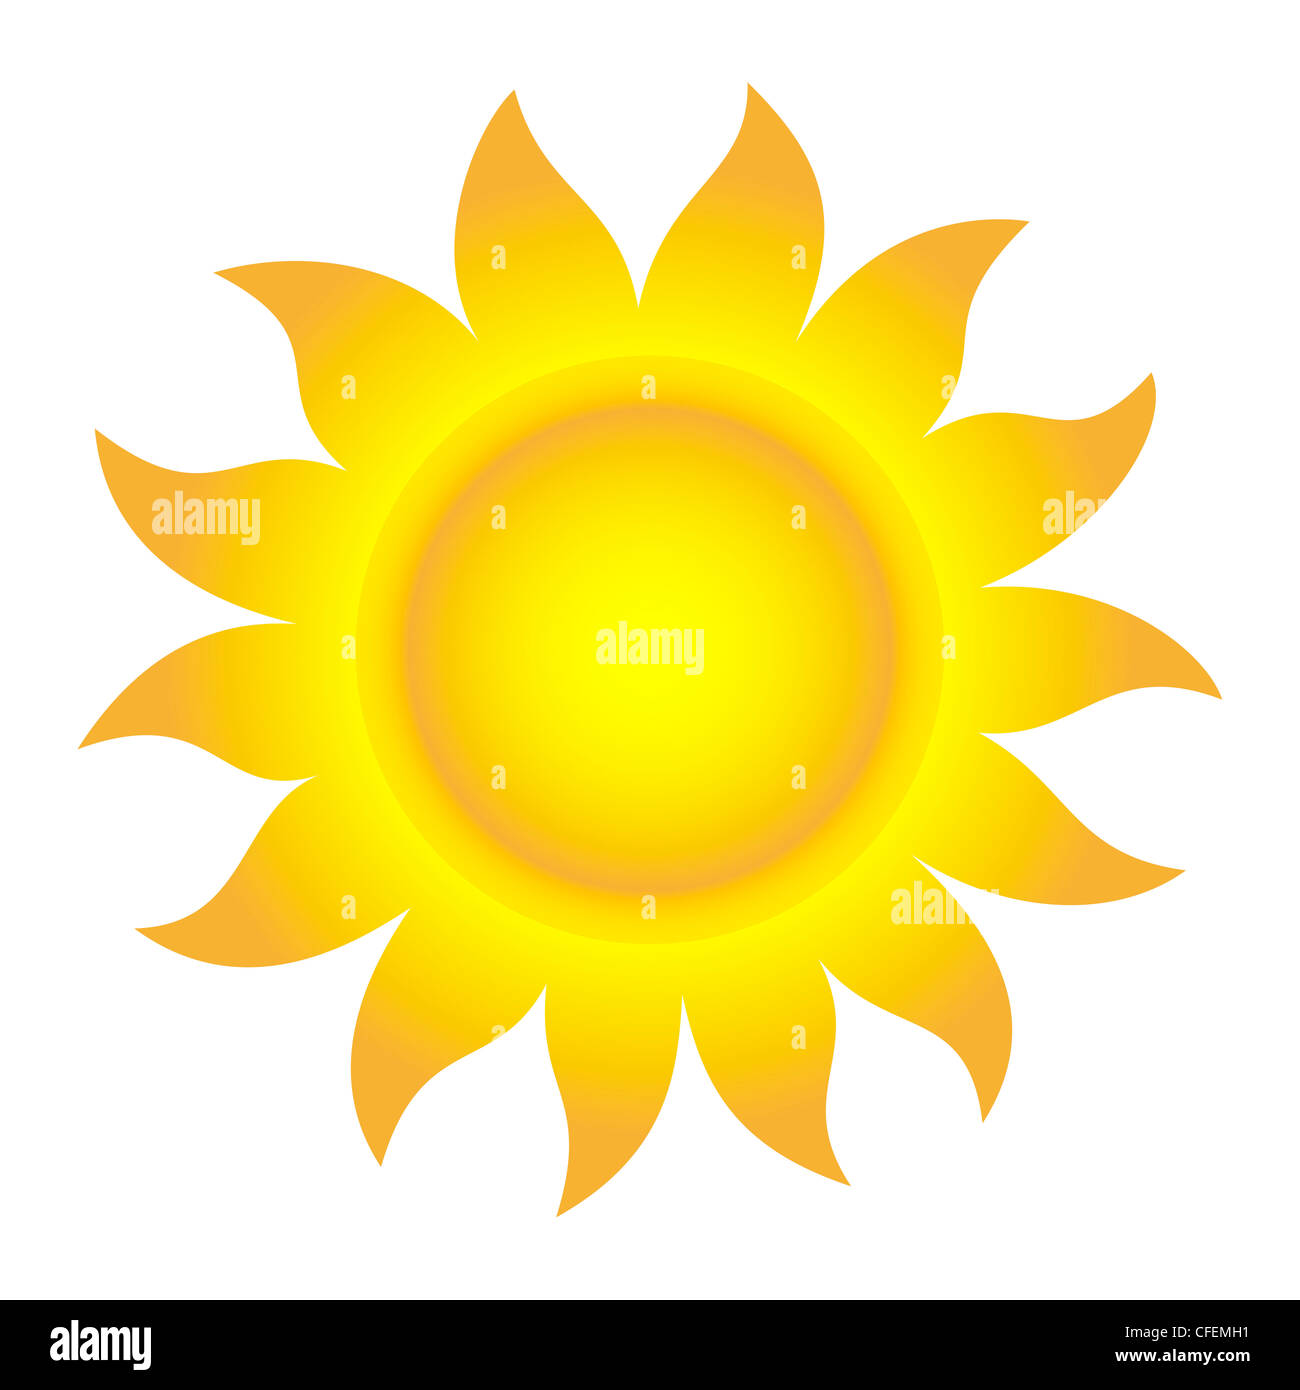 Vector Illustration of Abstract Sun - Stock Image